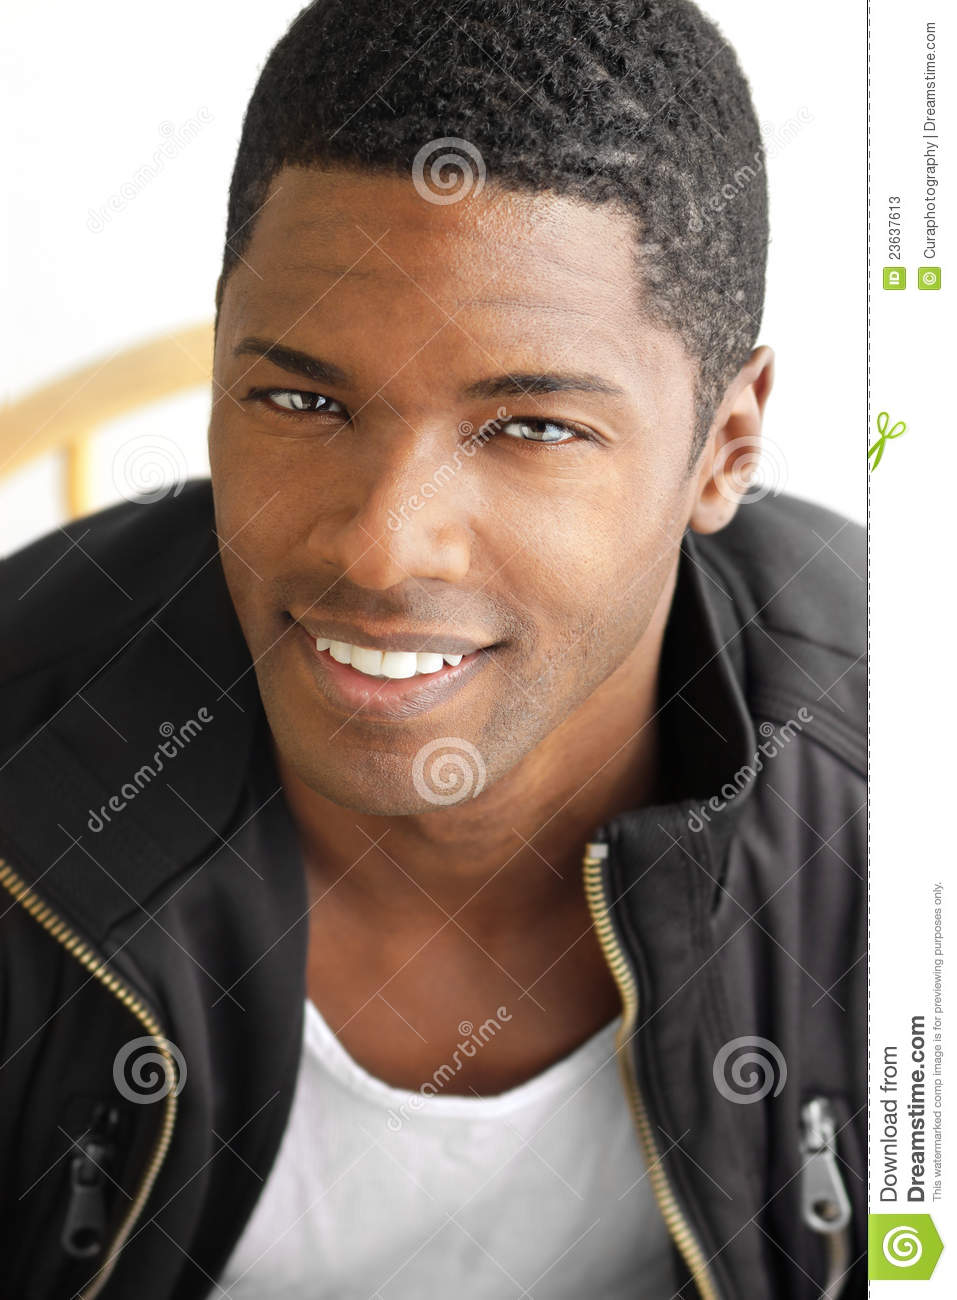 Smiling Black Man Stock Image Image Of Beauty Looking